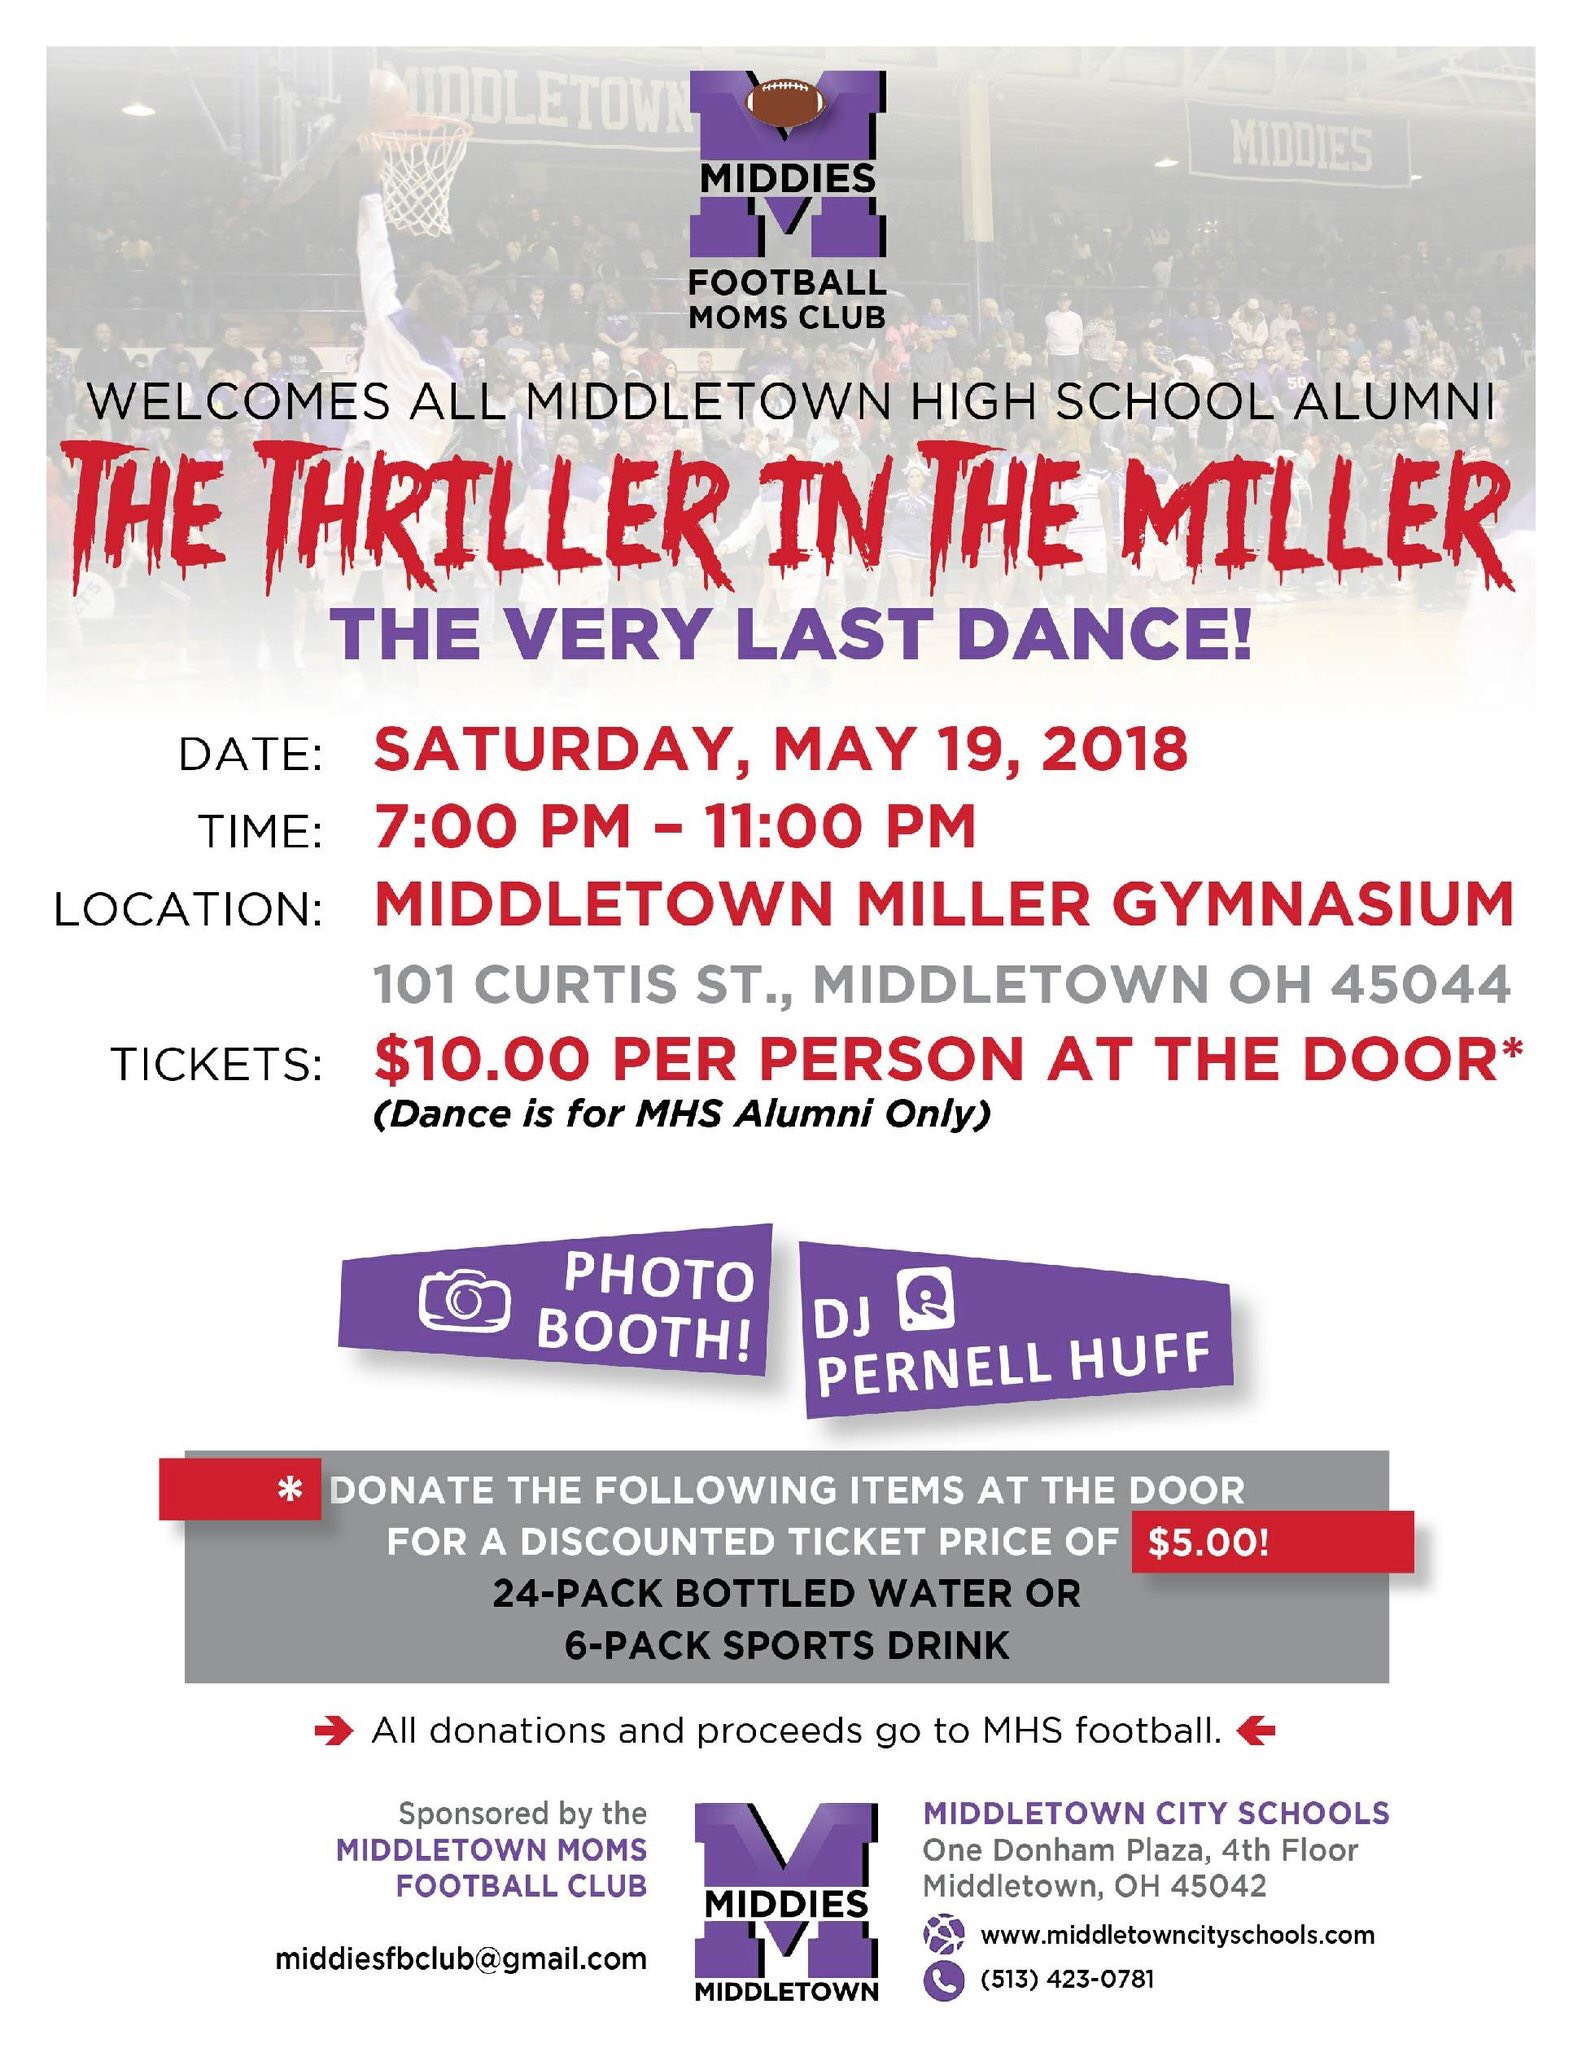 The Last Dance at the Miller Gym Saturday May 19th